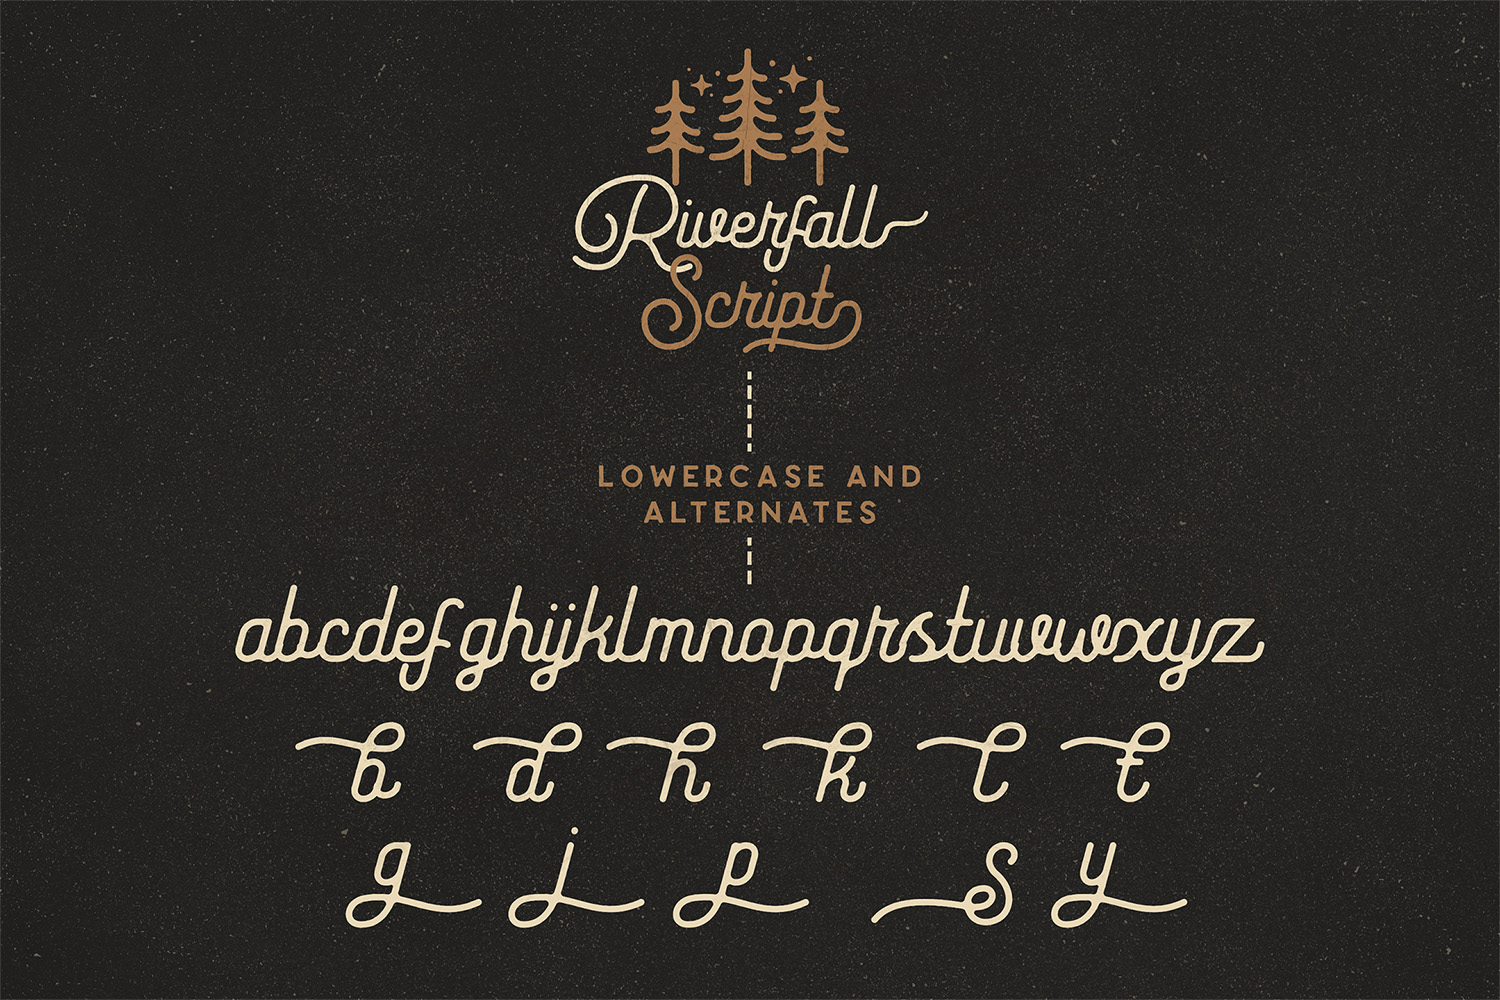 Riverfall Rounded Script and Sans 4 Typeface Ver.1 example image 3